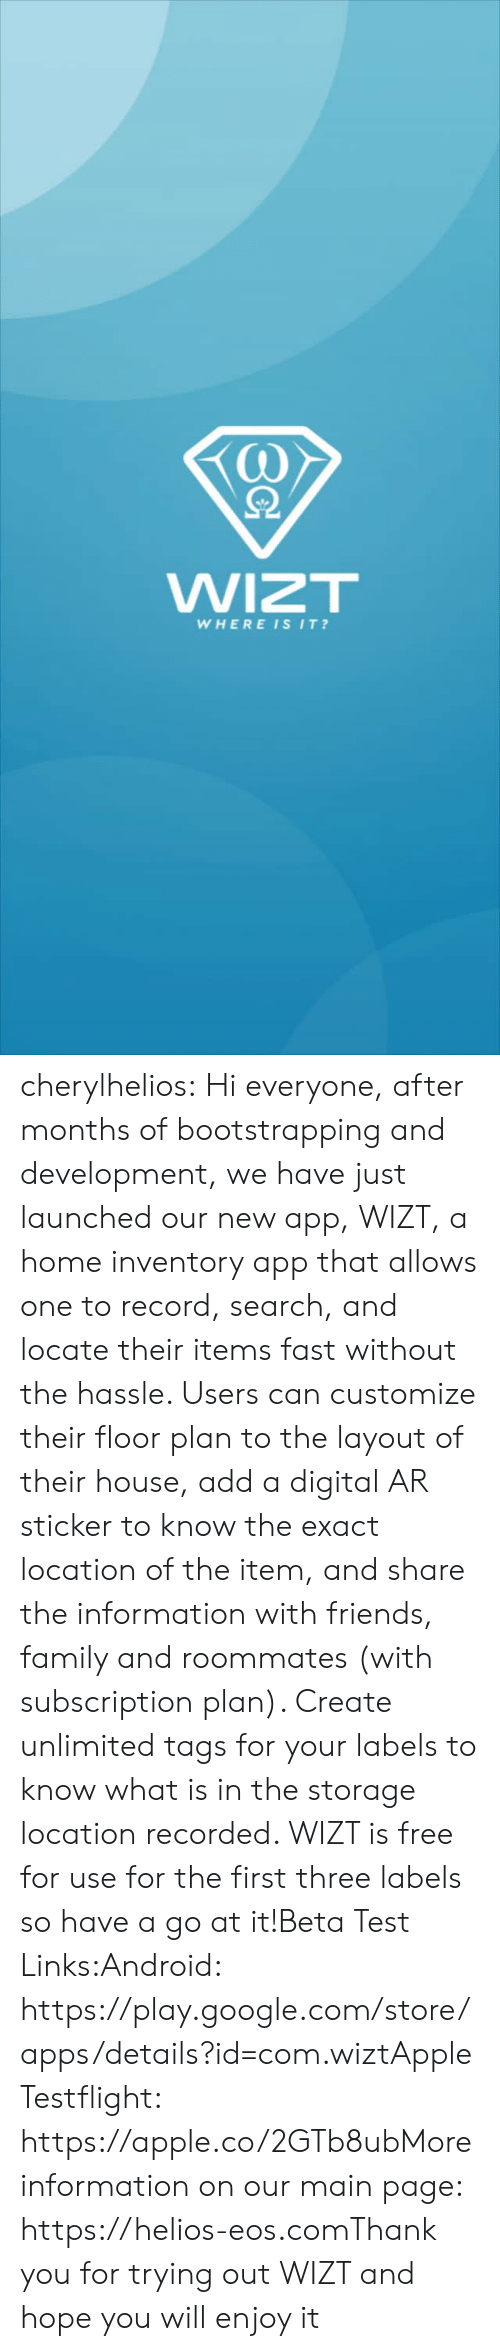 links: WIZT  WHEREISIT? cherylhelios:  Hi everyone, after months of bootstrapping and development, we have just launched our new app, WIZT, a home inventory app that allows one to record, search, and locate their items fast without the hassle. Users can customize their floor plan to the layout of their house, add a digital AR sticker to know the exact location of the item, and share the information with friends, family and roommates (with subscription plan). Create unlimited tags for your labels to know what is in the storage location recorded. WIZT is free for use for the first three labels so have a go at it!Beta Test Links:Android: https://play.google.com/store/apps/details?id=com.wiztApple Testflight: https://apple.co/2GTb8ubMore information on our main page: https://helios-eos.comThank you for trying out WIZT and hope you will enjoy it